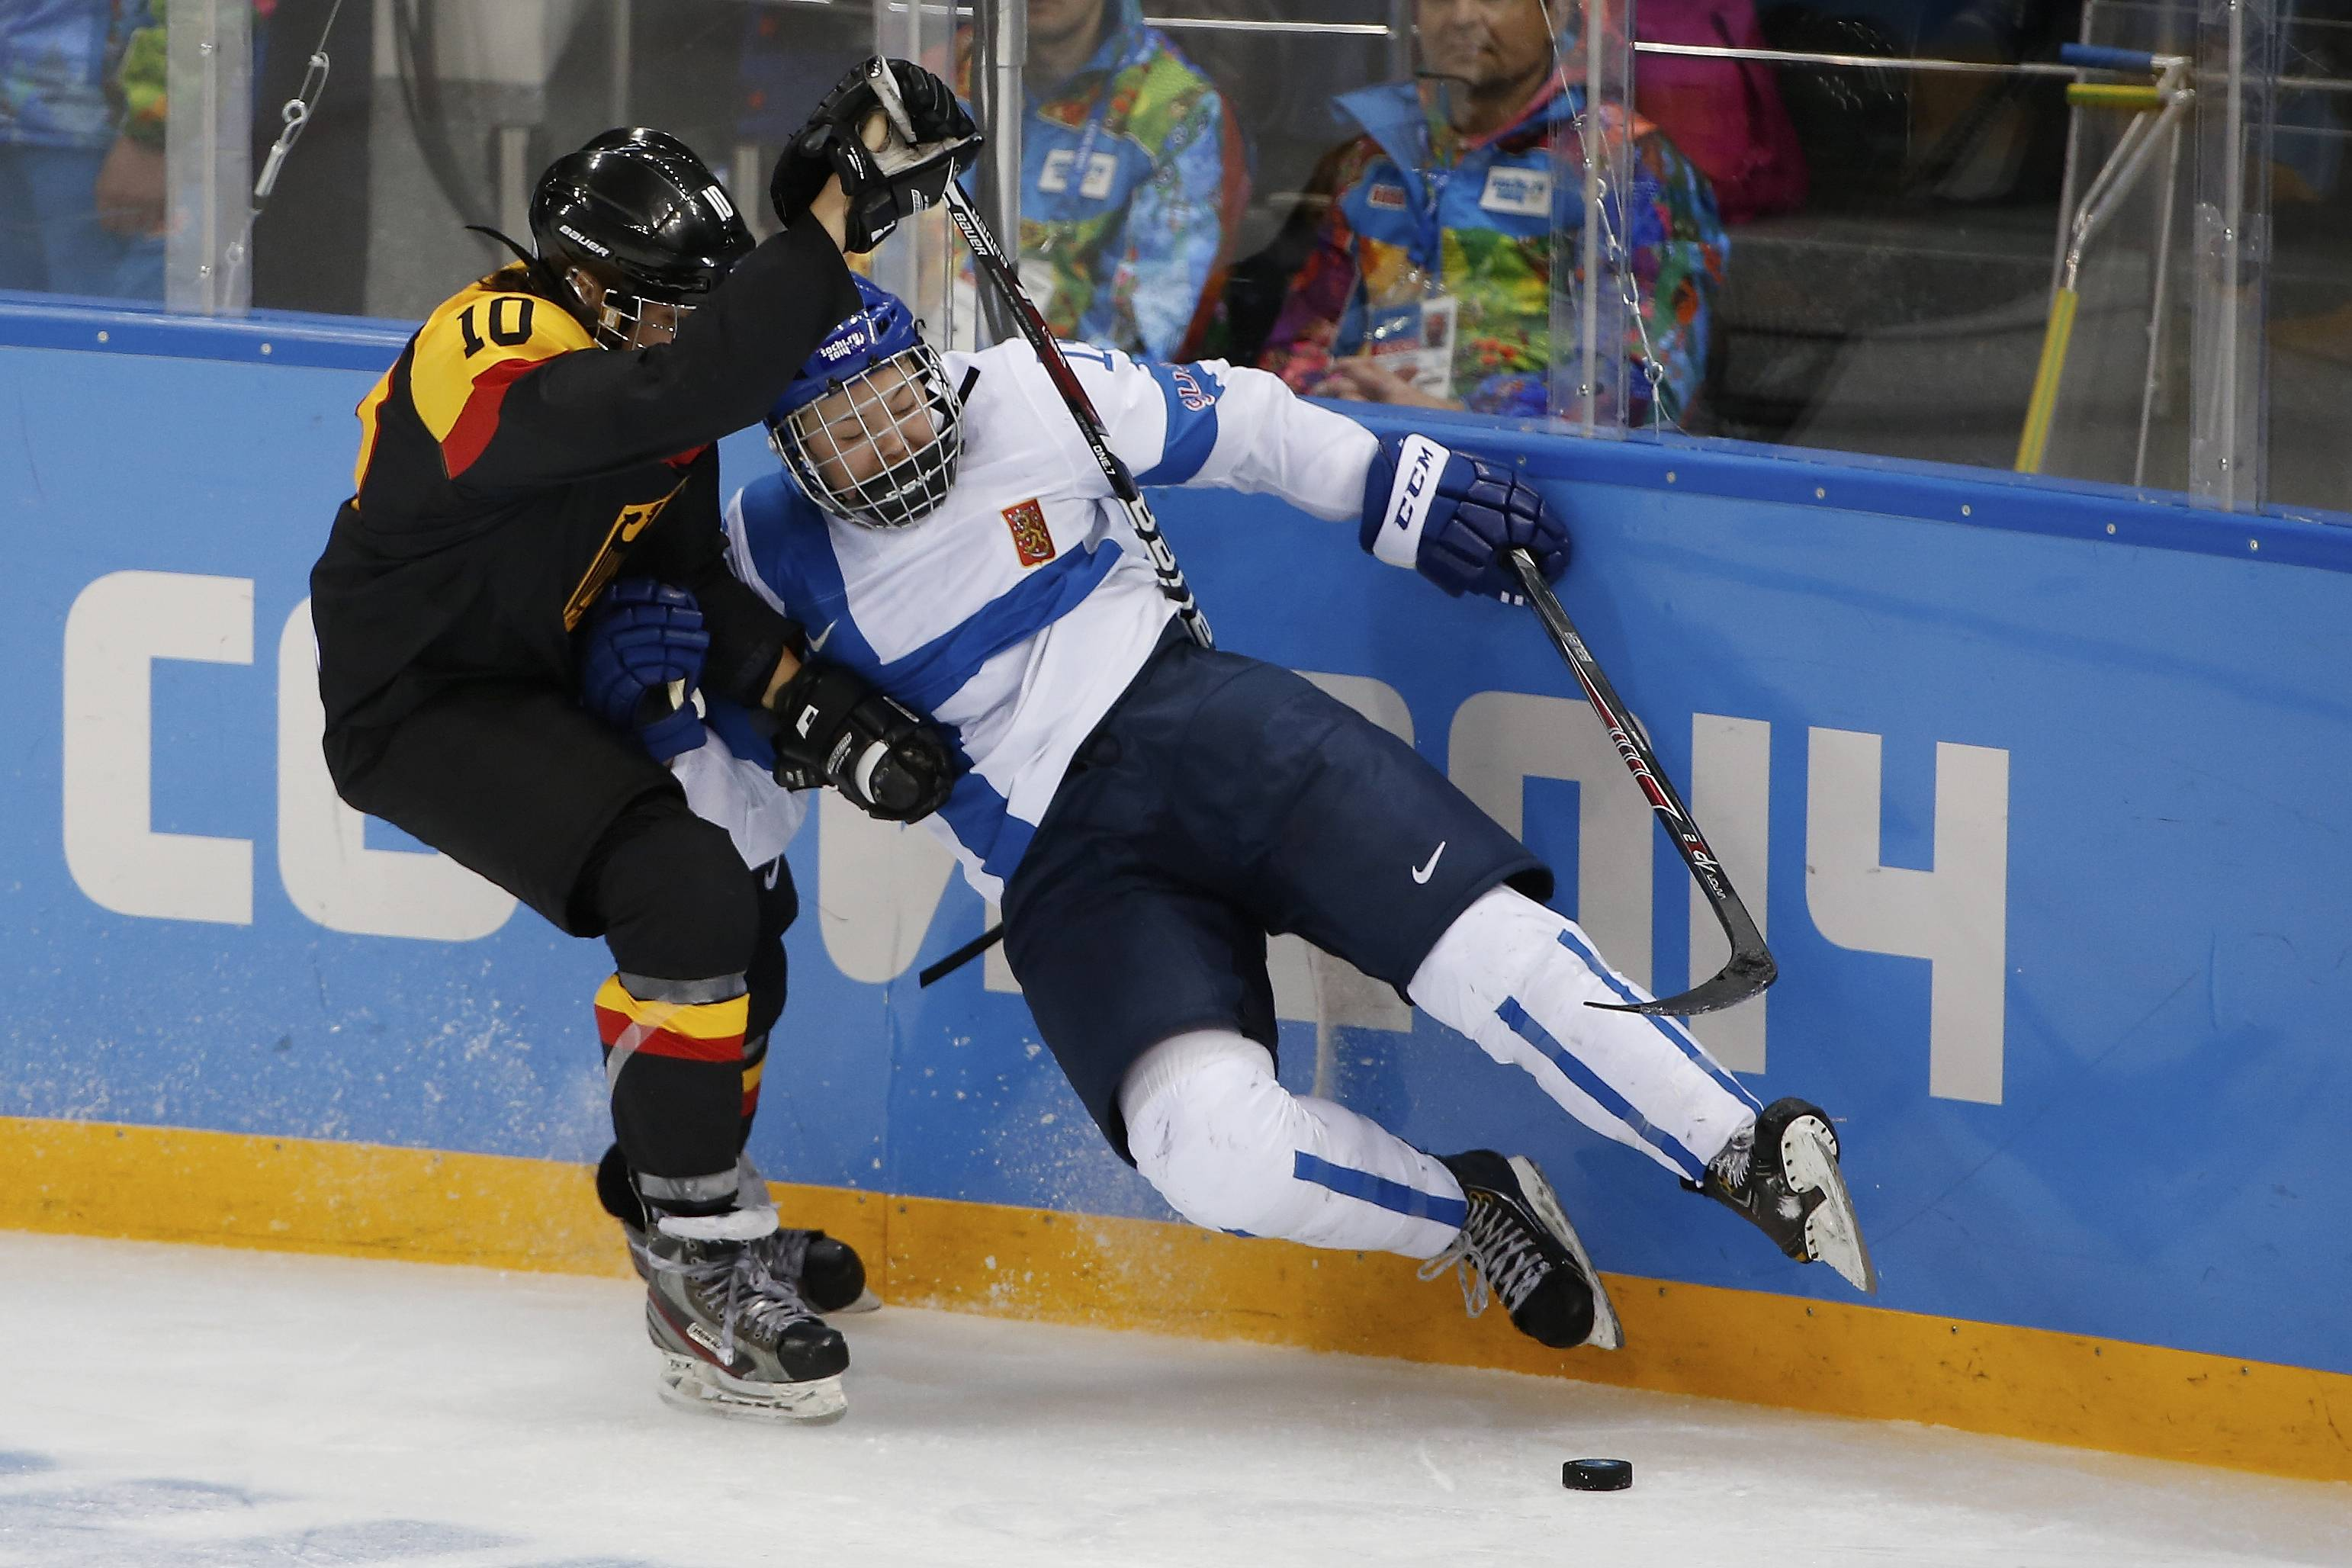 Anja Weisser of Germany knocks Minnamari Tuominen of Finland off her skates during the 2014 Winter Olympics women's ice hockey game at Shayba Arena, Sunday, Feb. 16, 2014, in Sochi, Russia. Finland defeated Germany 2-1.